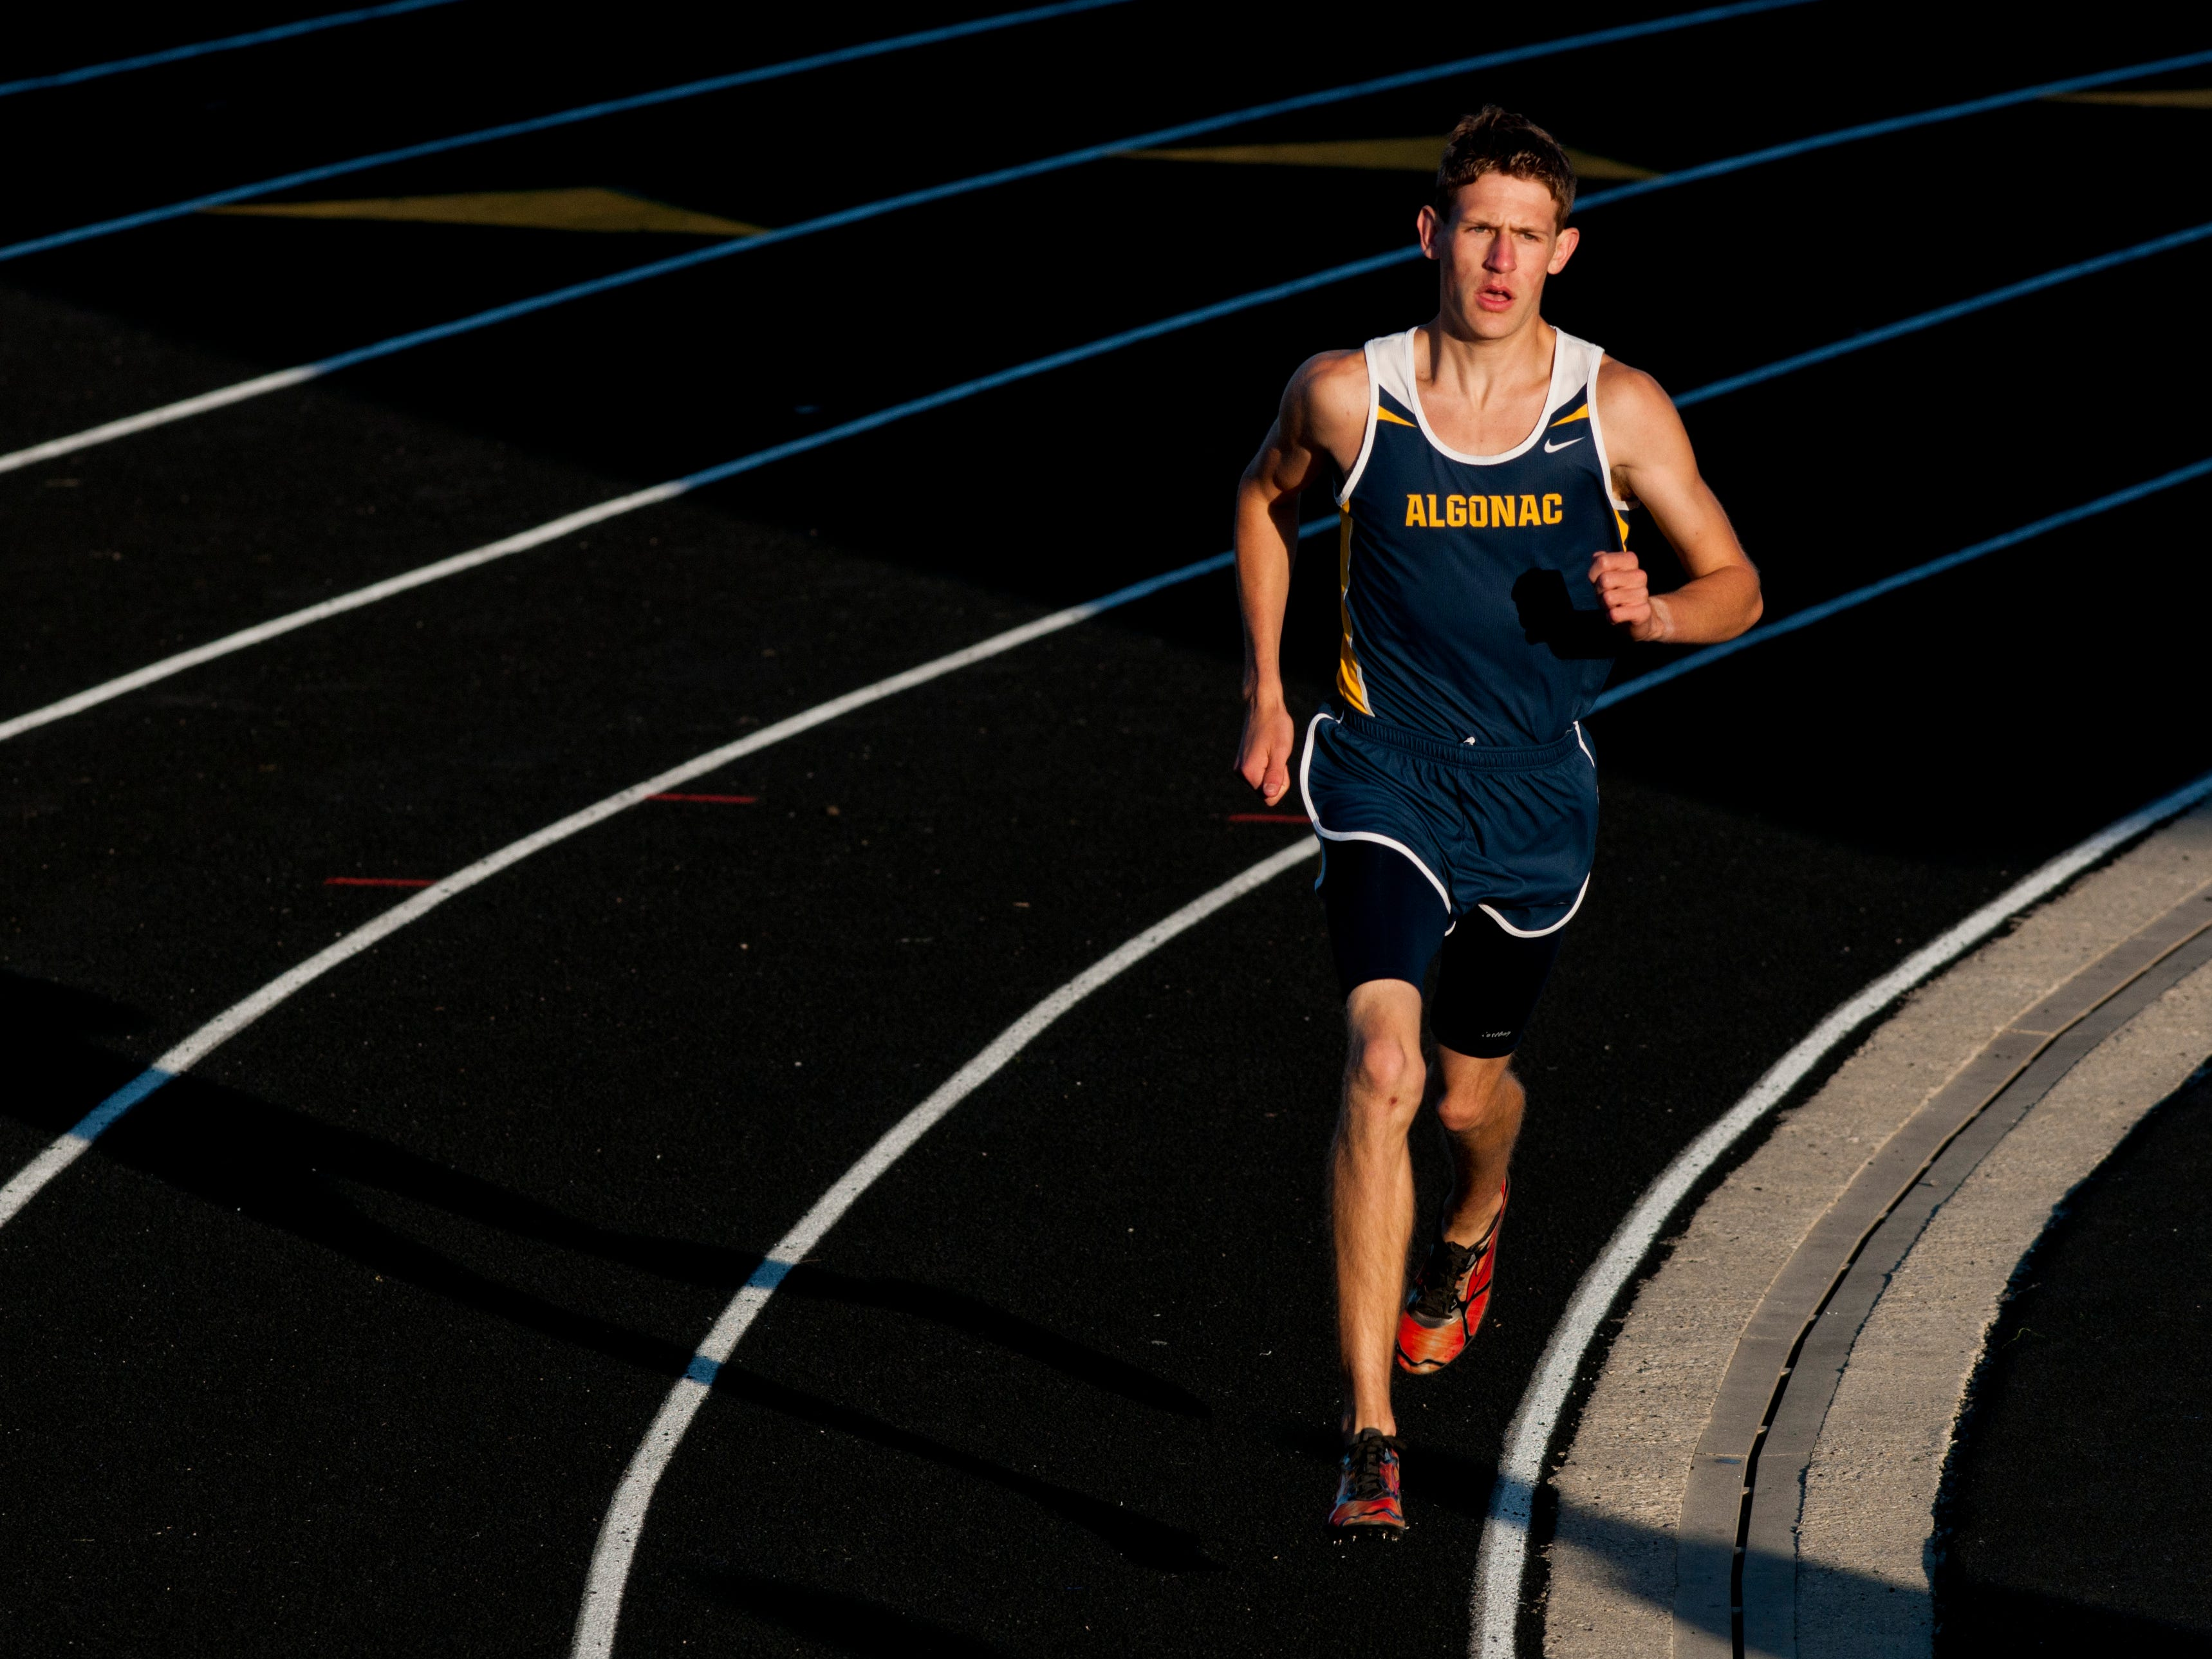 Algonac senior Morgan Beadlescomb competes in the mile run during the Meet of Champions Friday, May 22, 2015 at Marysville High School.